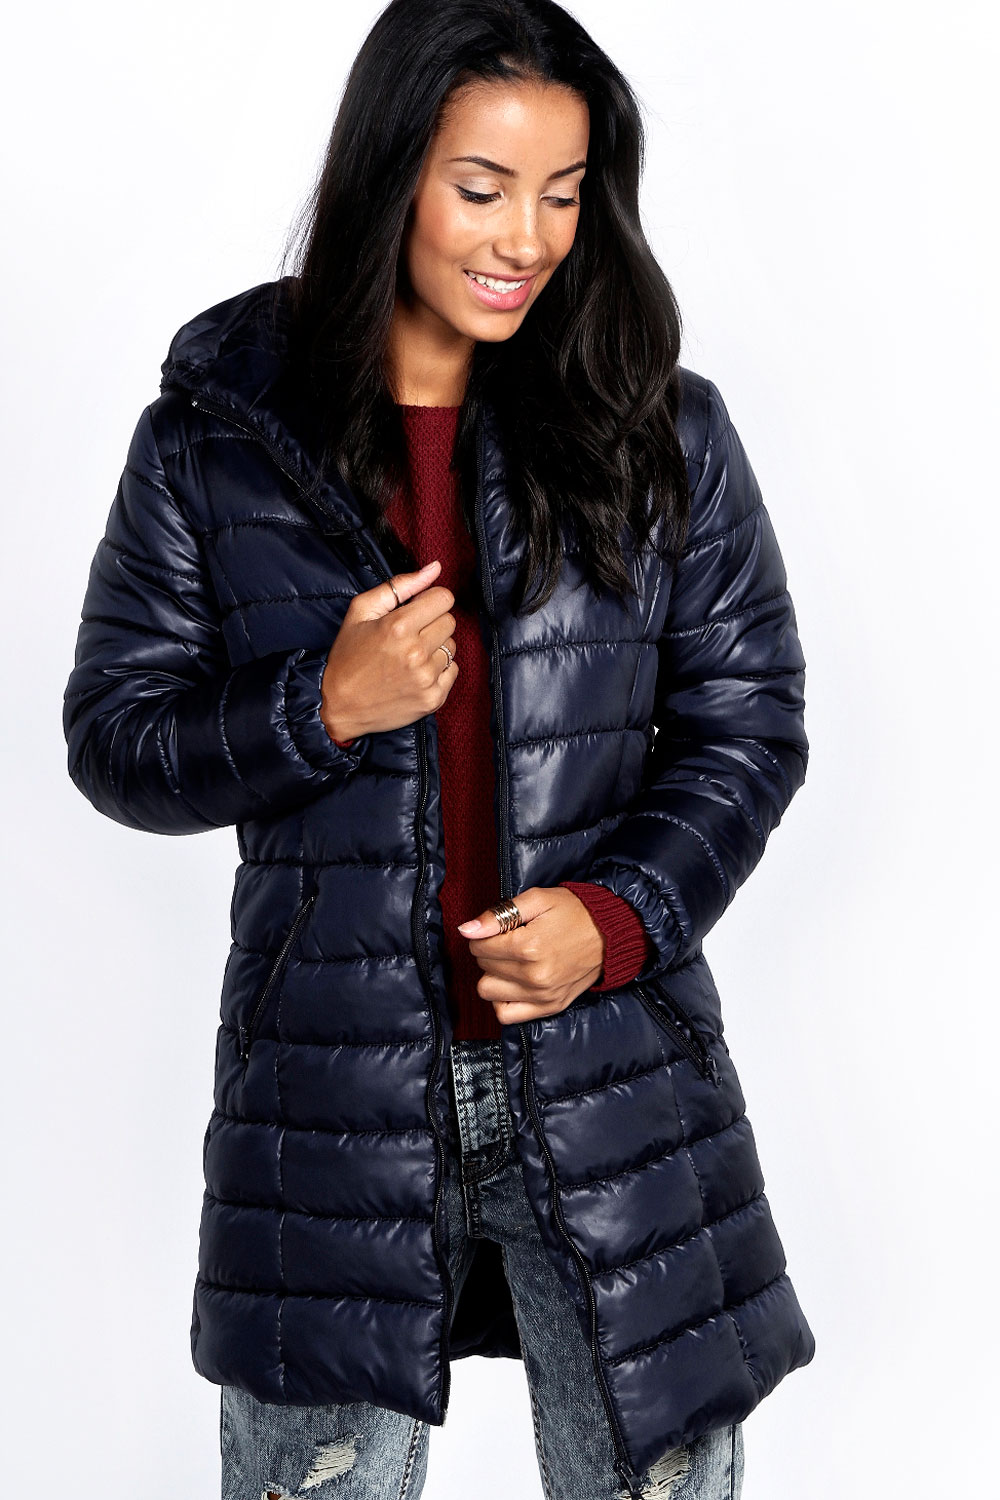 Packable puffer jackets for women are lightweight and compatible, so it can be easily tucked away in the included travel bag. The jacket's heavyweight coverage has a lightweight feel, perfect for everyday wear, travel and more active lifestyles.